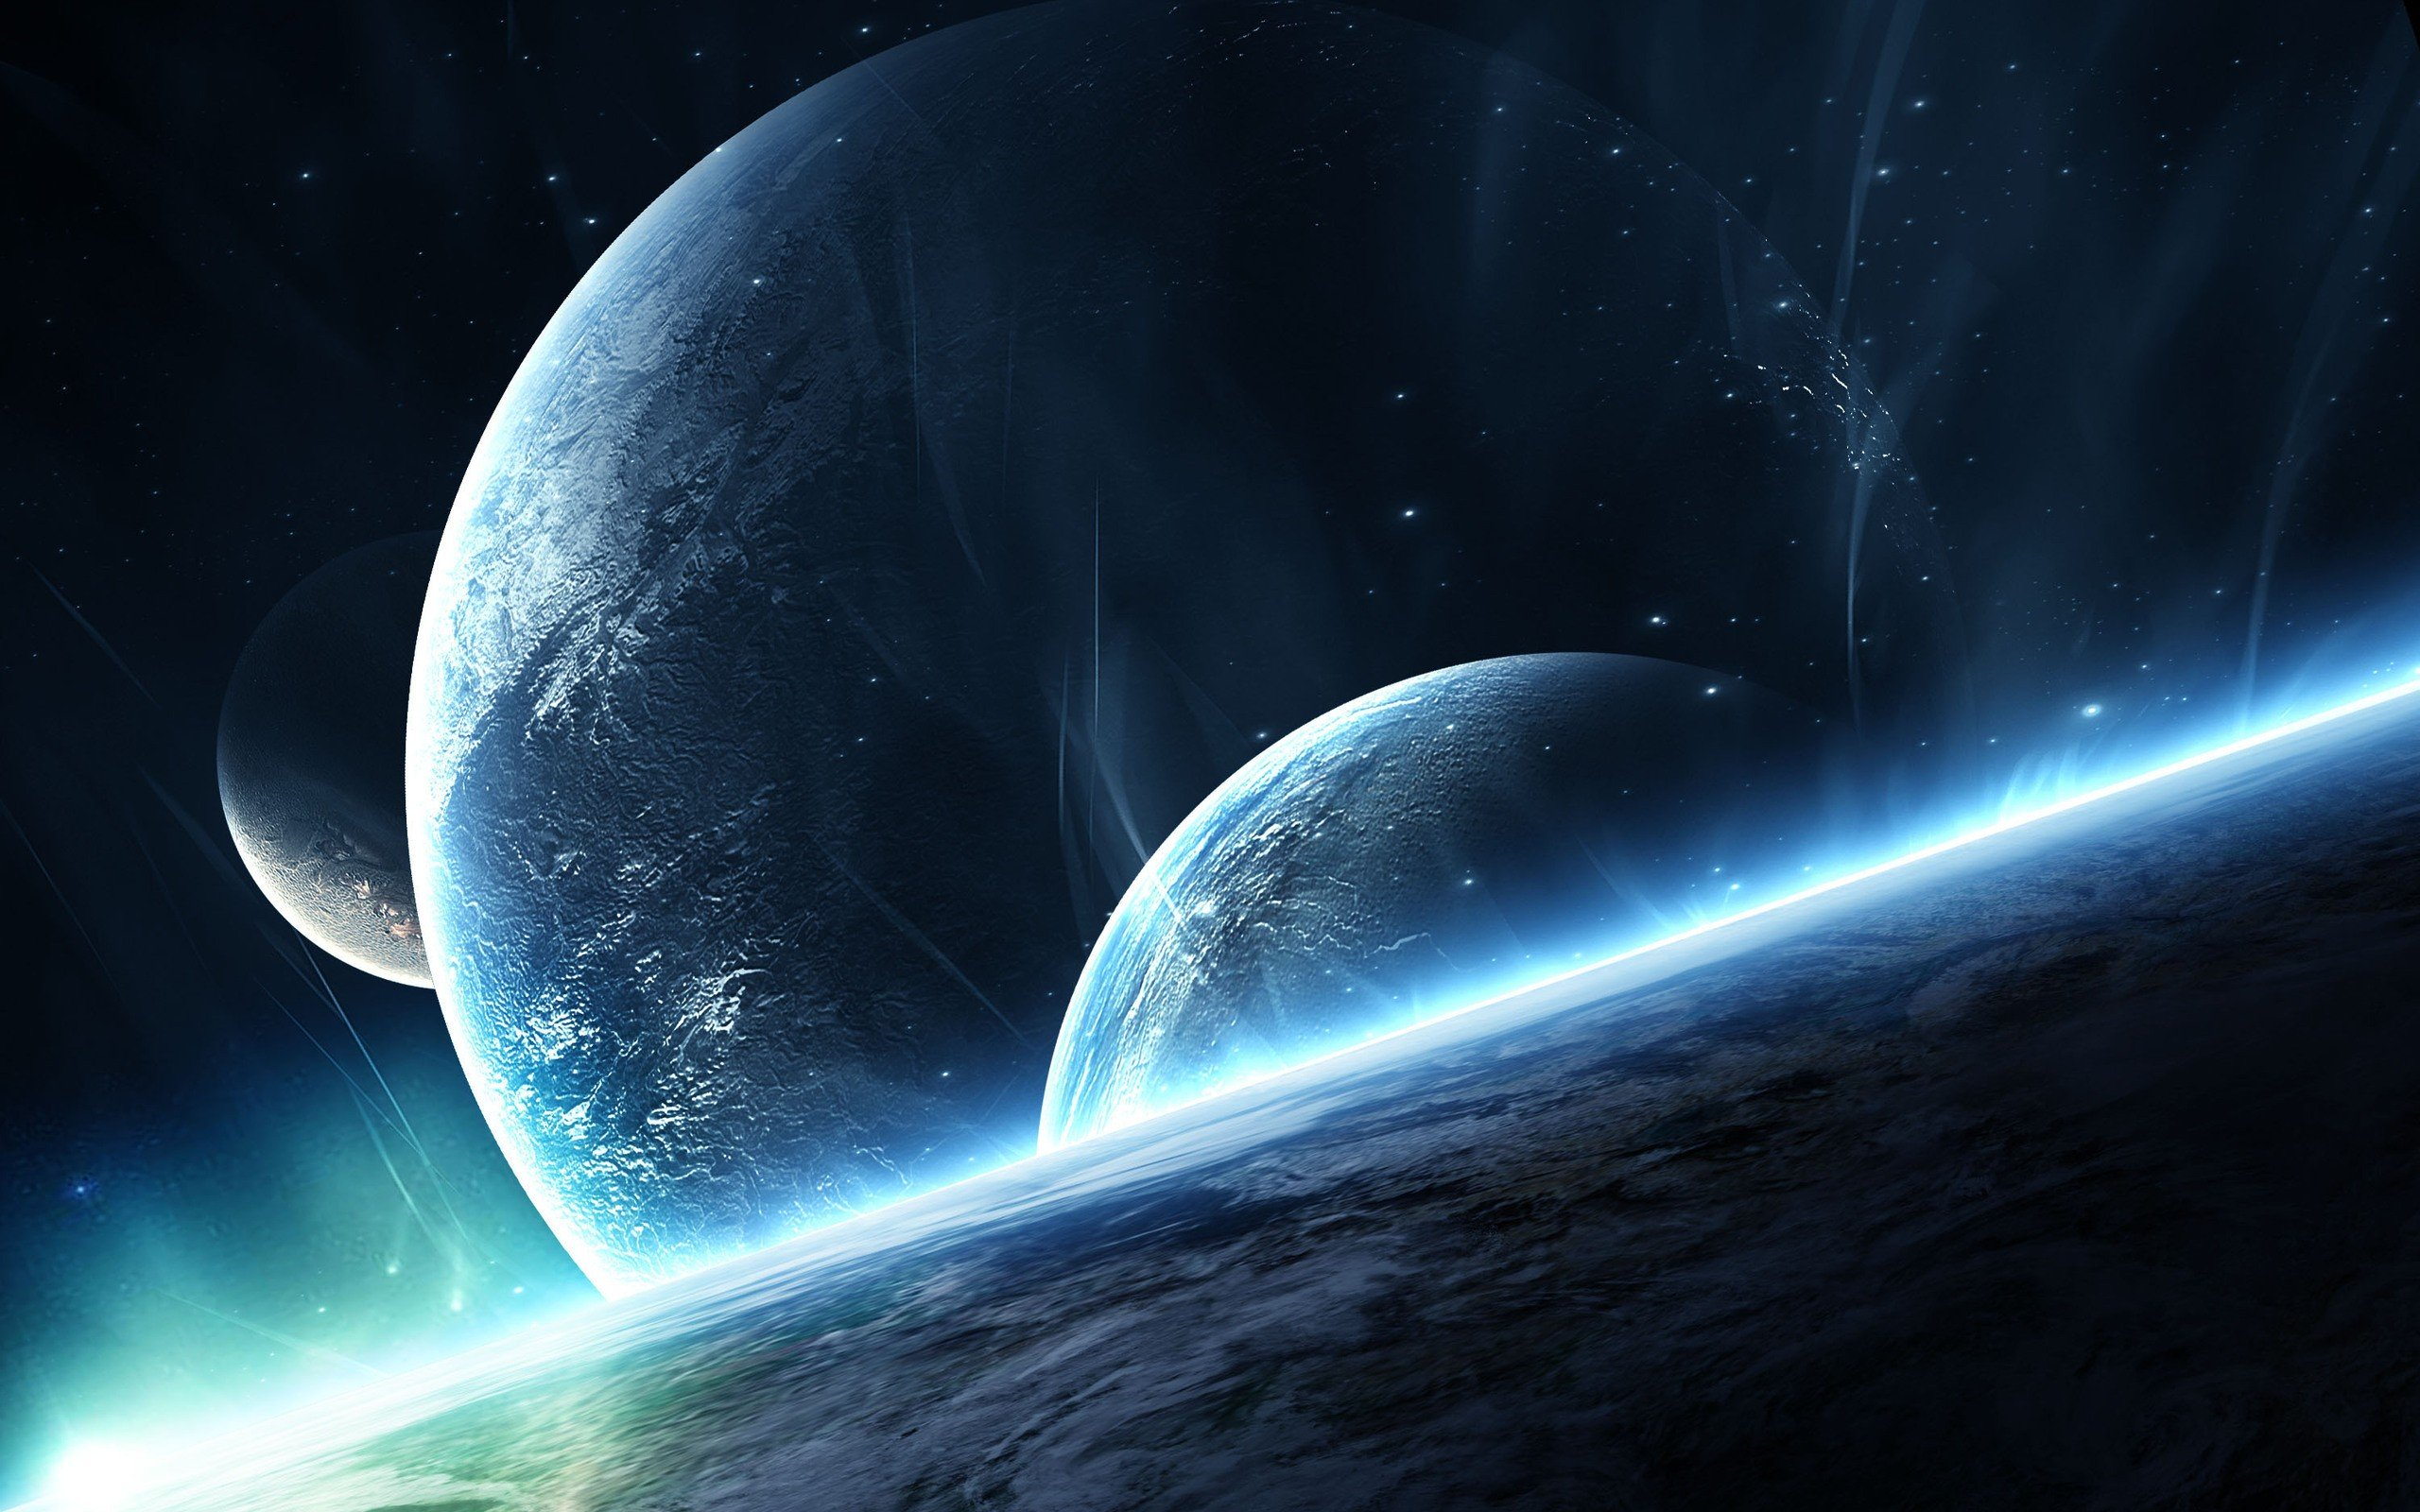 space wallpaper 5 2560x1600